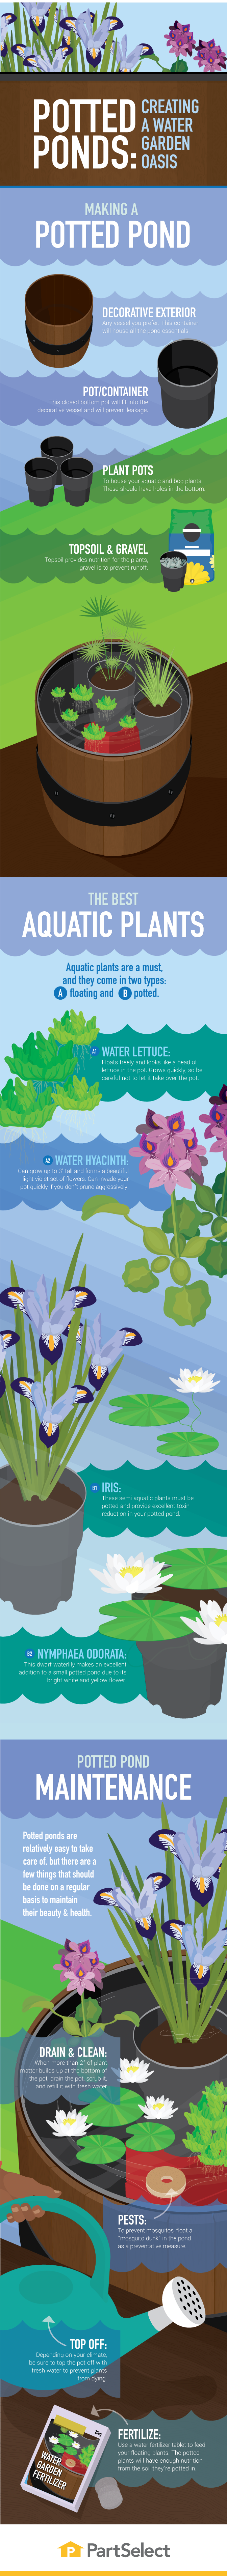 Potted Ponds: Creating a Water Garden Oasis